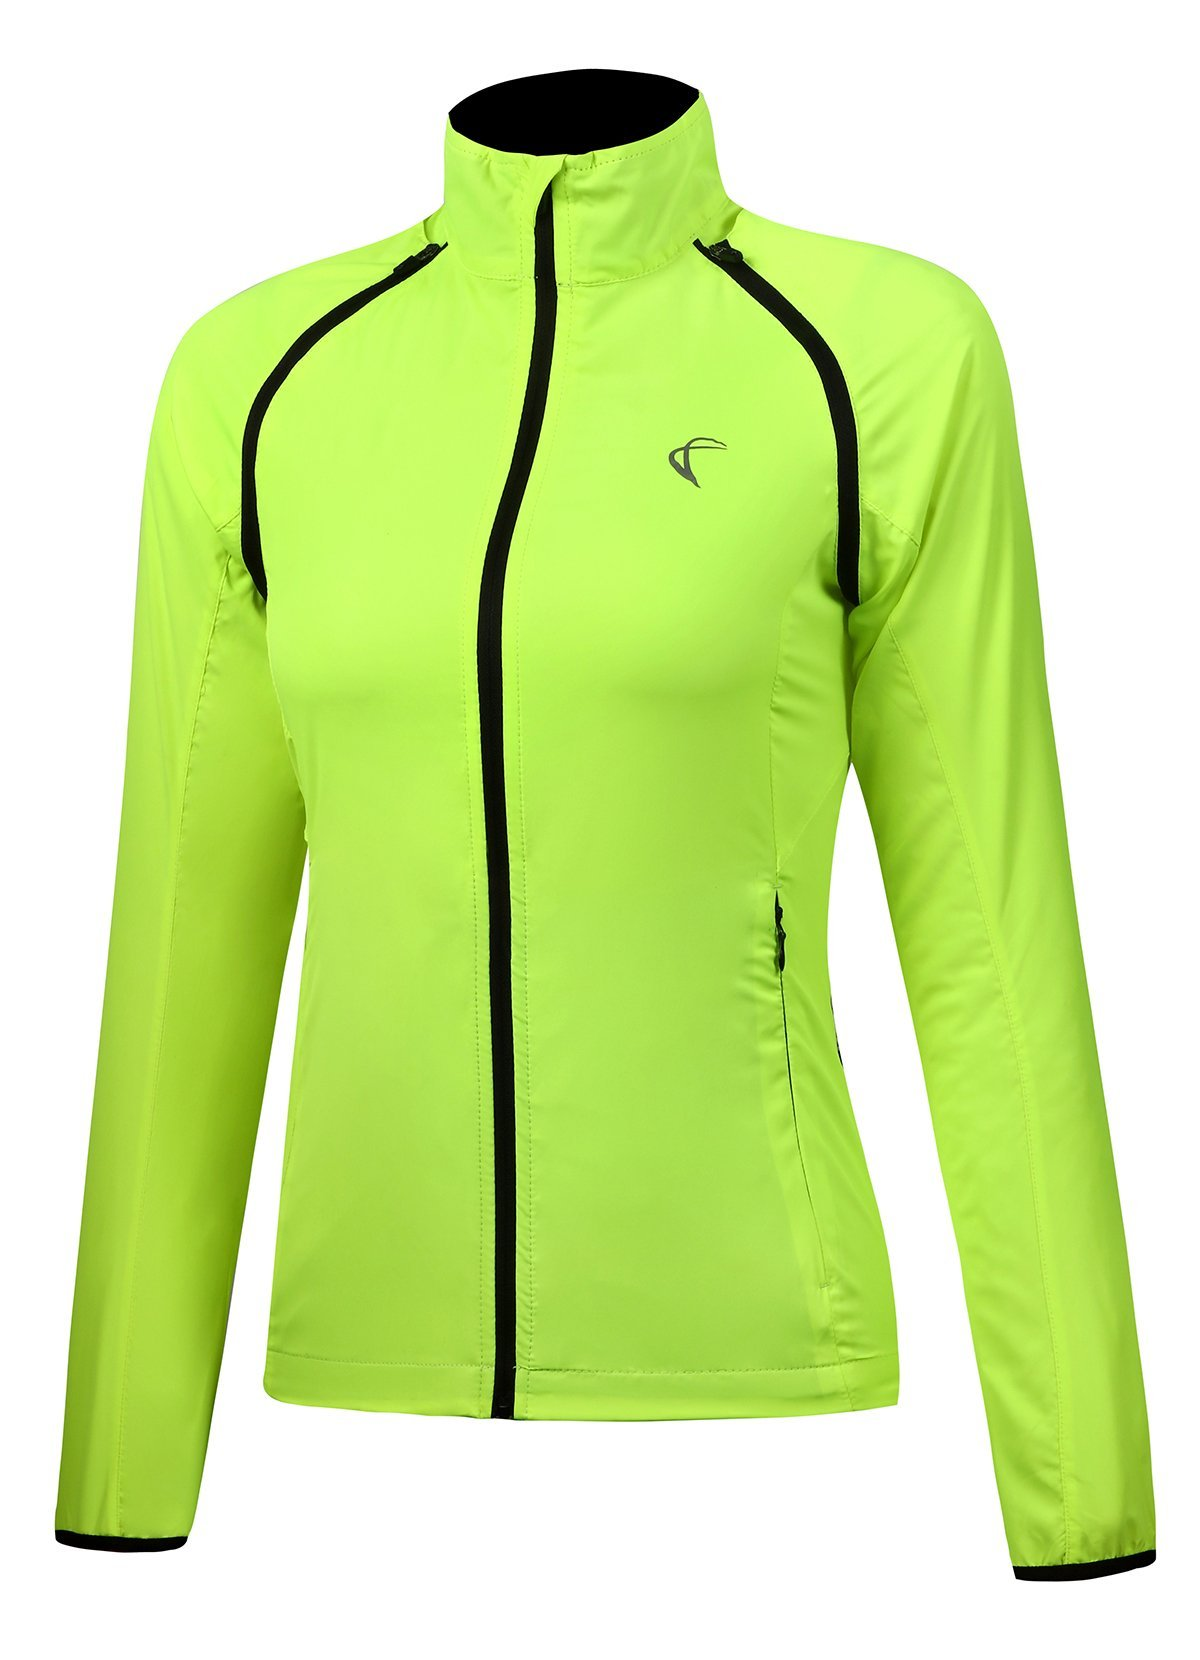 Shelcup Women's Windproof Water Resistant Convertible Cycling Running Jacket (Yellow, L)